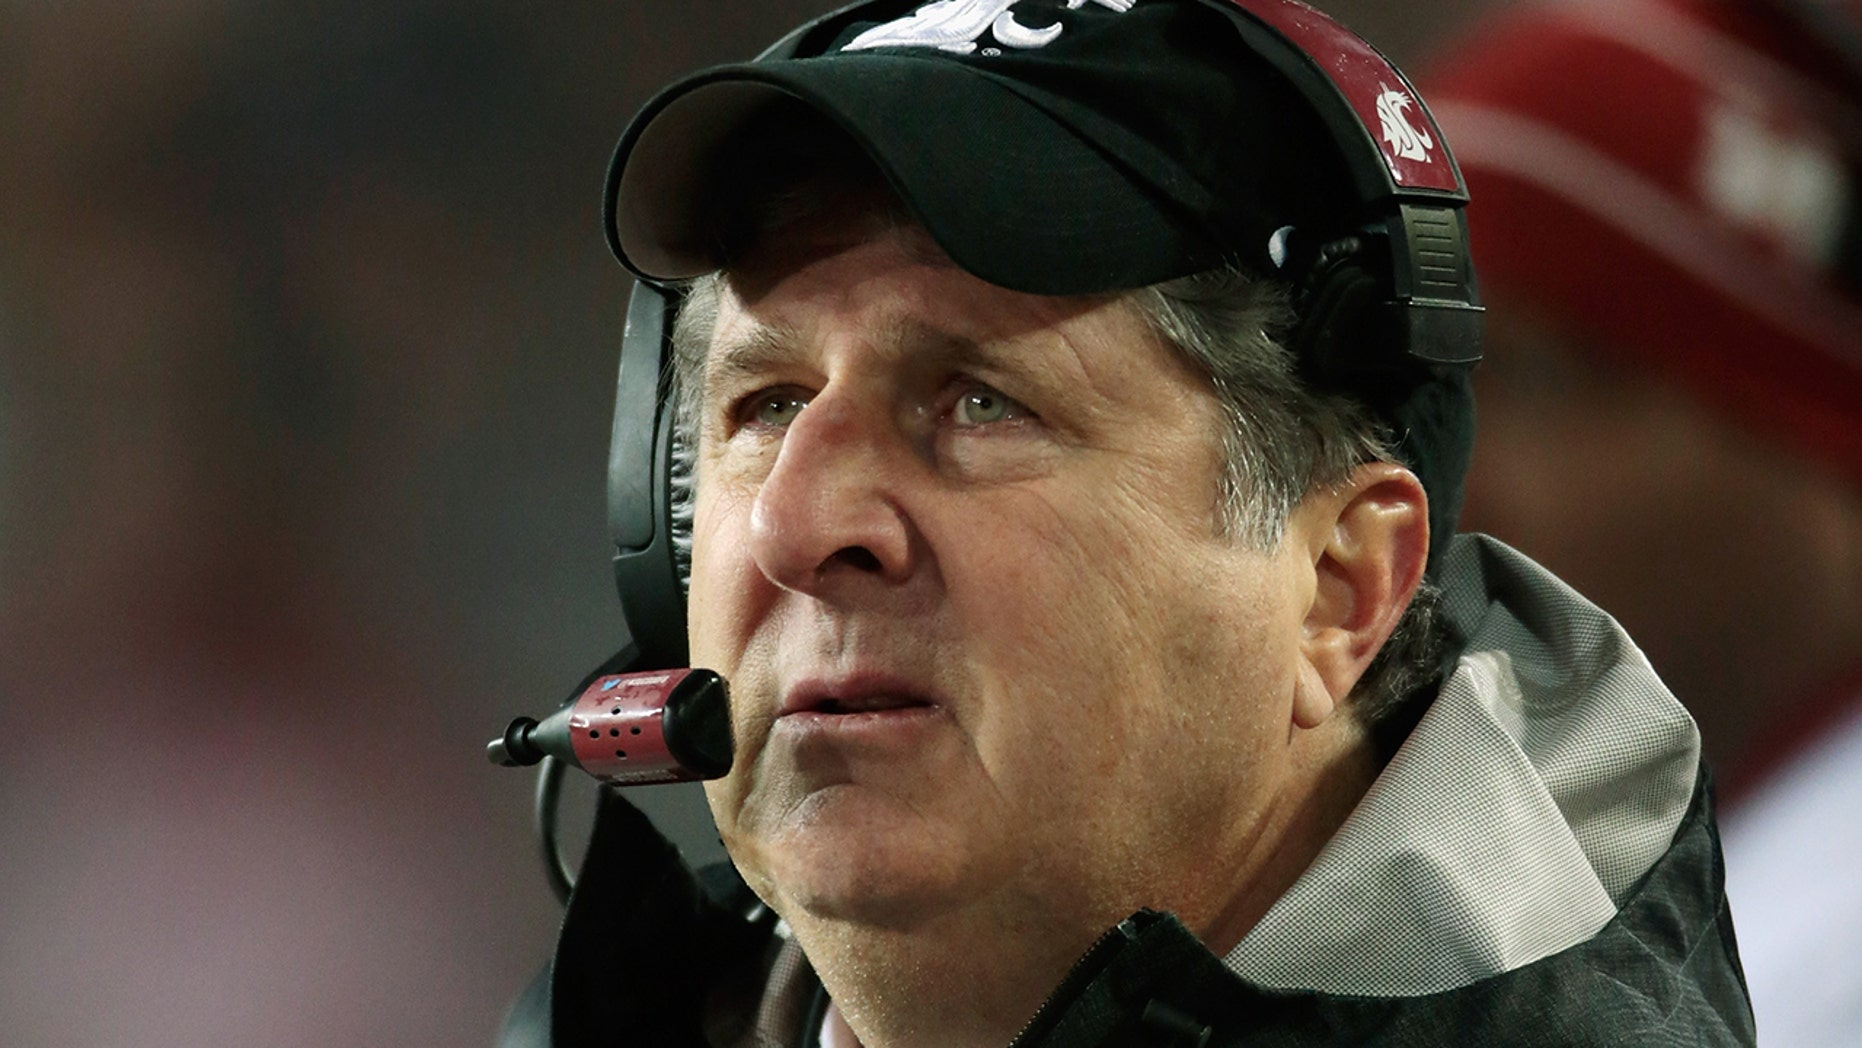 A Washington State official said head coach Mike Leach, pictured, cost the school $  1.6 million over an Obama tweet.